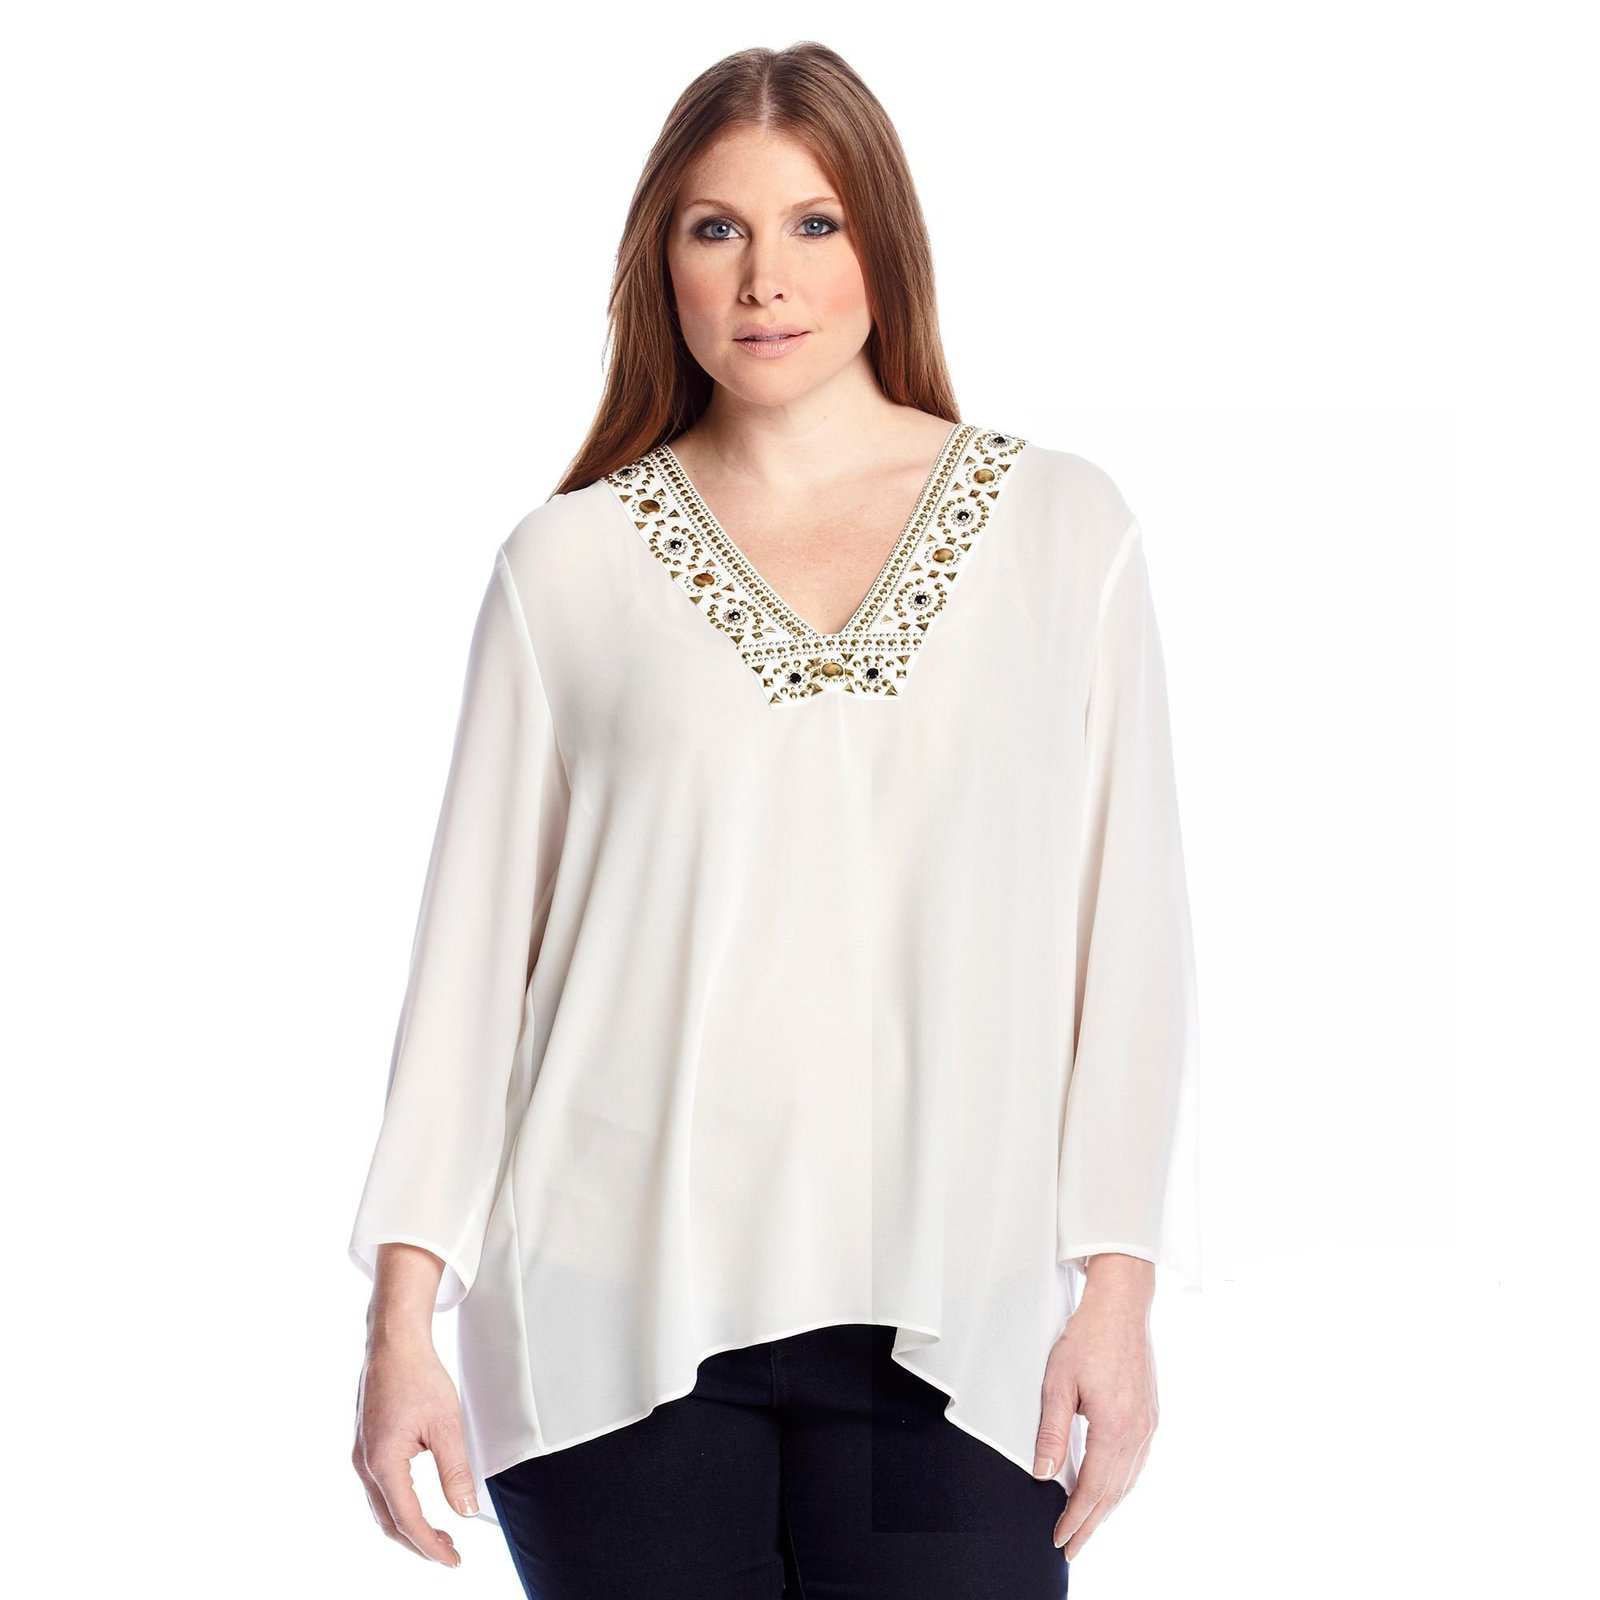 MICHAEL Michael Kors Embellished Neckline Plus Size Top (White) (3X) - $75.99